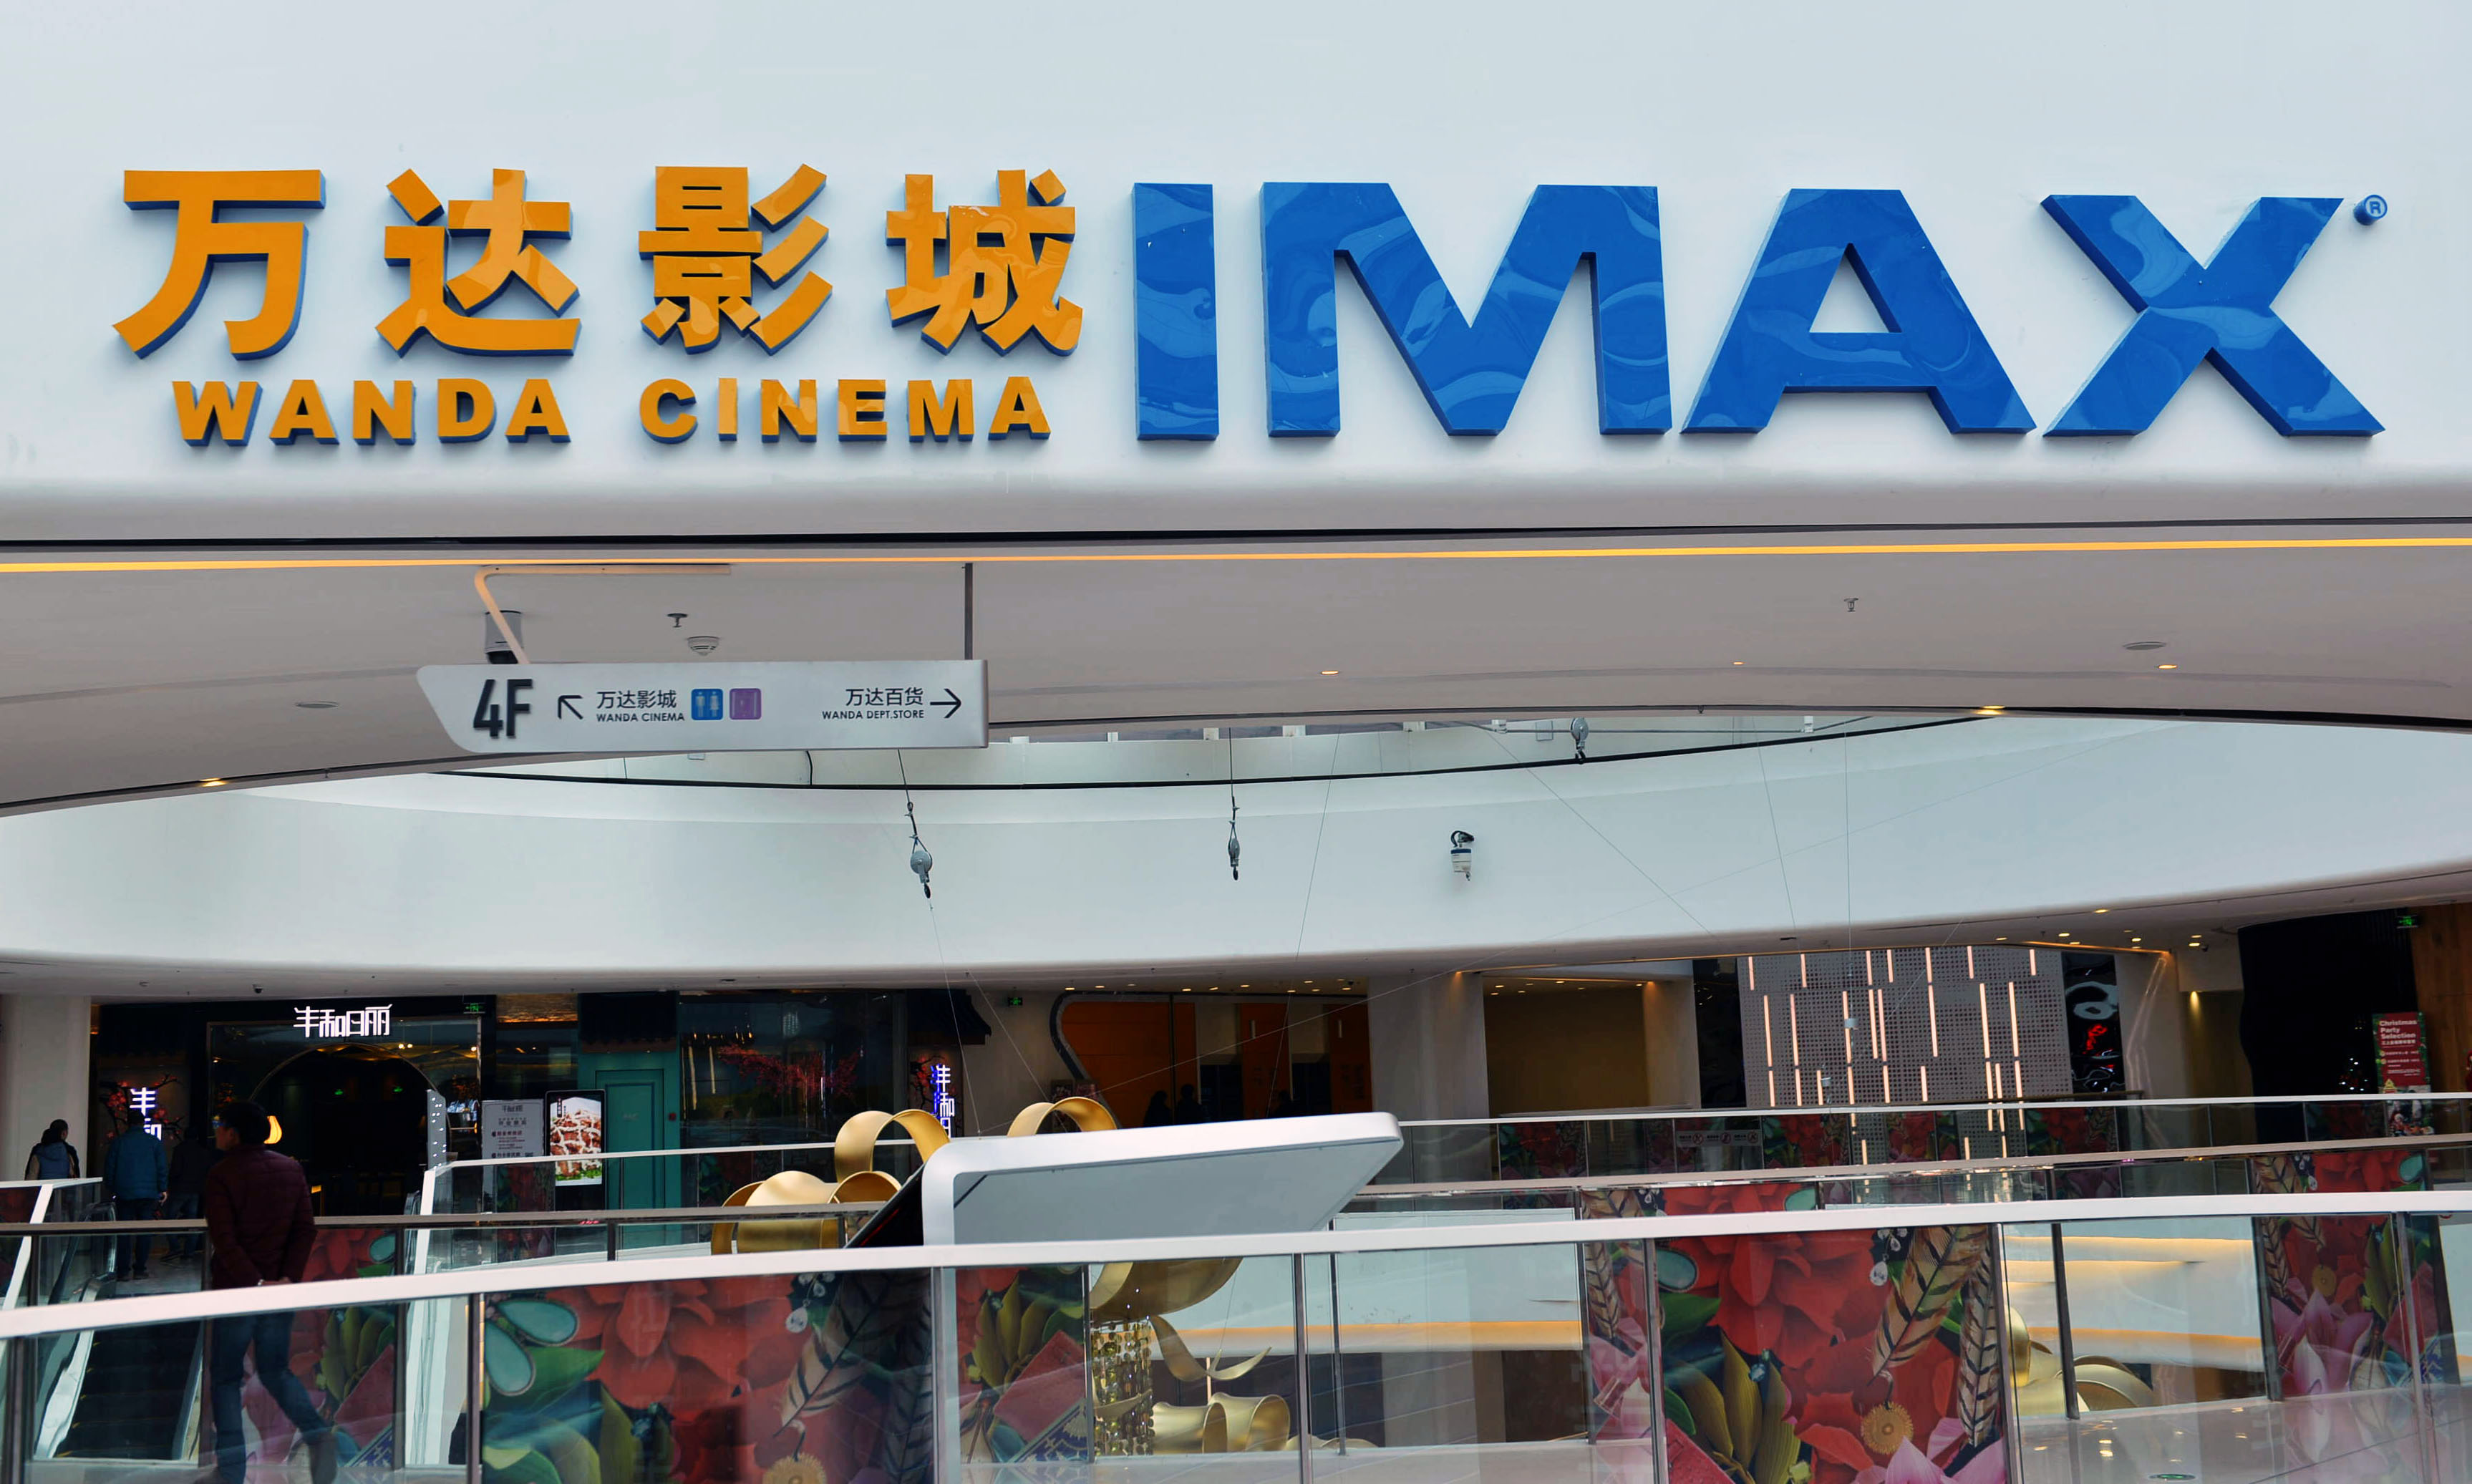 --FILE--A signboard of a Wanda Cinema IMAX is seen at a shopping mall in Hangzhou city, east Chinas Zhejiang province, 5 January 2015.                                         China's biggest movie theater operator Wanda Cinema Line Corp is seeking to raise 1.26 billion yuan ($203.26 million) through an initial public offering, scaling back its original listing plan, people with knowledge of the matter said. The chain controlled by Dalian Wanda Commercial Properties Co. Chairman Wang Jianlin, one of China's richest men, had planned to raise up to 2 billion yuan through the Shenzhen listing, according to a prospectus published last year. The source said Wanda Cinema has is now seeking about 21 yuana share - less than originally planned - following guidance from the stock market regulator, the China Securities Regulatory Commission (CSRC), which has been moving to tighten IPO sales. The theater operator is offering 60 million shares, or around 10.7 percent of the company.  Wanda Cinema doesn't care how much it will raise in the IPO,  said one of the sources.  The key of the listing is to open doors for the company's future development and expansion.